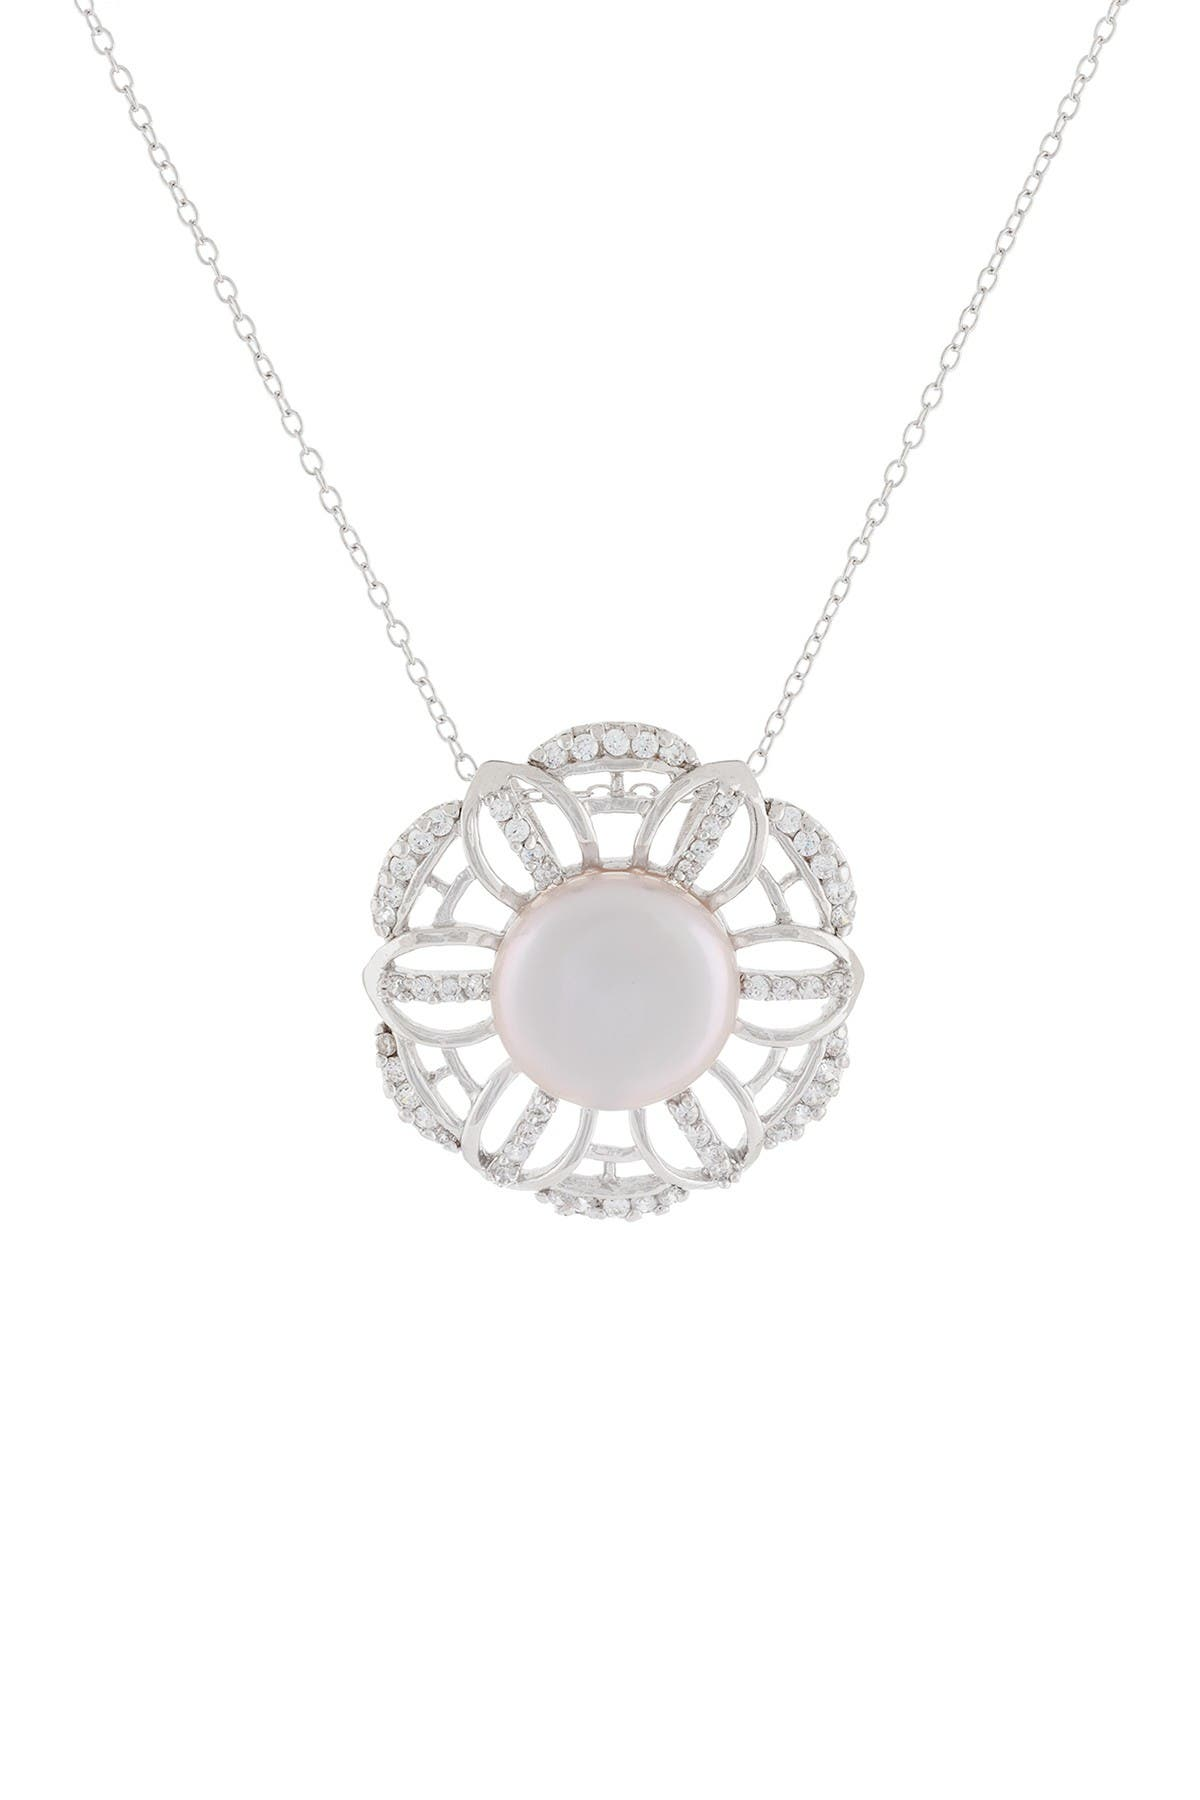 Image of Splendid Pearls Pave CZ & 11-12mm Cultured Freshwater Pearl Coin Pendant Necklace